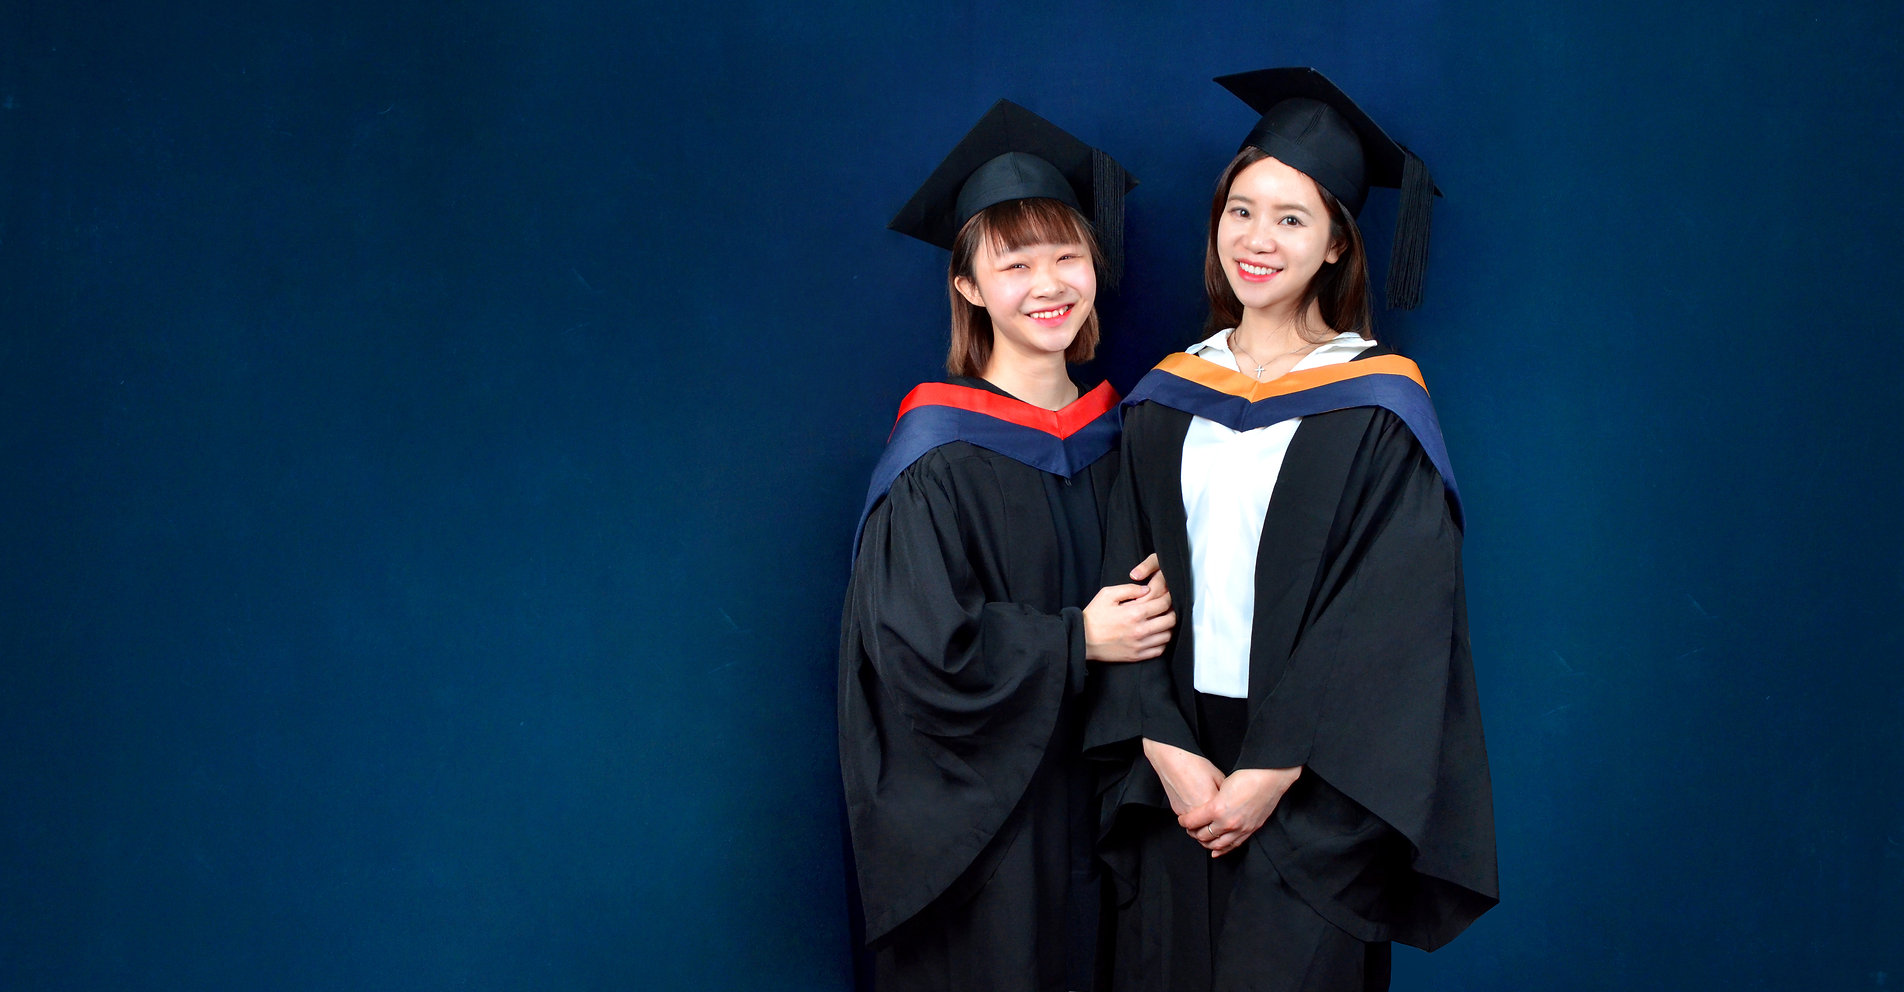 The University of Hong Kong (HKU) Graduation Gown | HKU Academic Dress and Academic Regalia | Rent or Buy | HKU graduation gown | HKU academic dress | HKU gown  香港大學畢業袍 |  港大畢業袍  | 學士畢業袍、碩士畢業袍、博士袍畢業袍